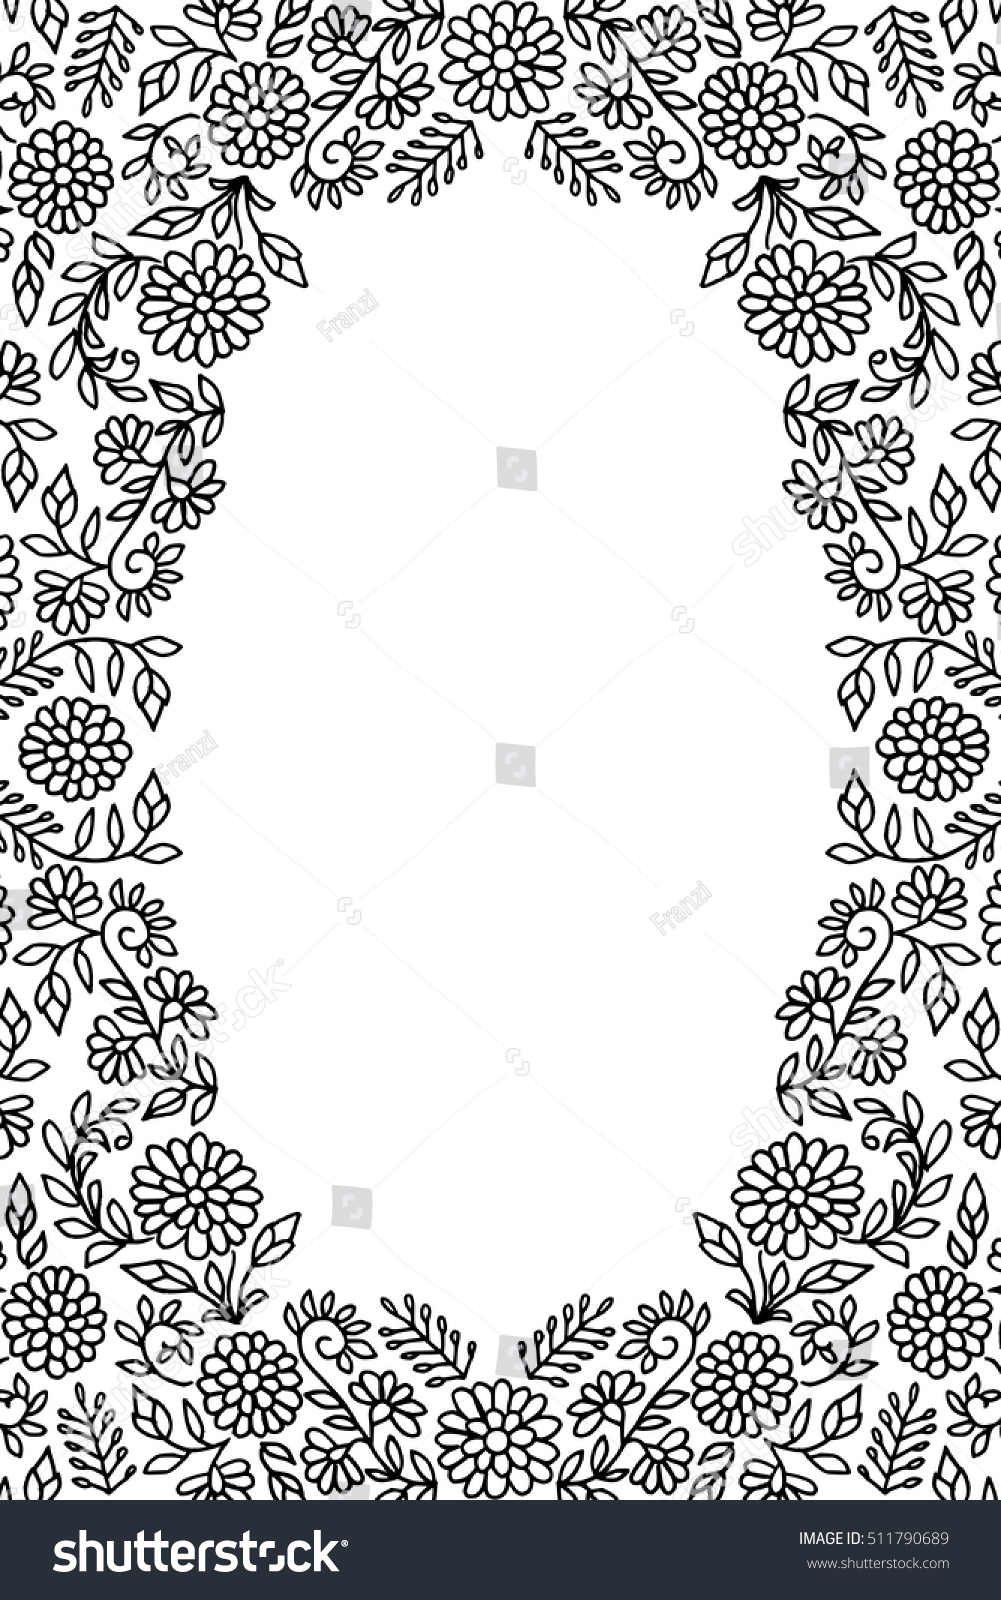 Hand Drawn Floral Greeting Card Frame Stock Vector Royalty Free